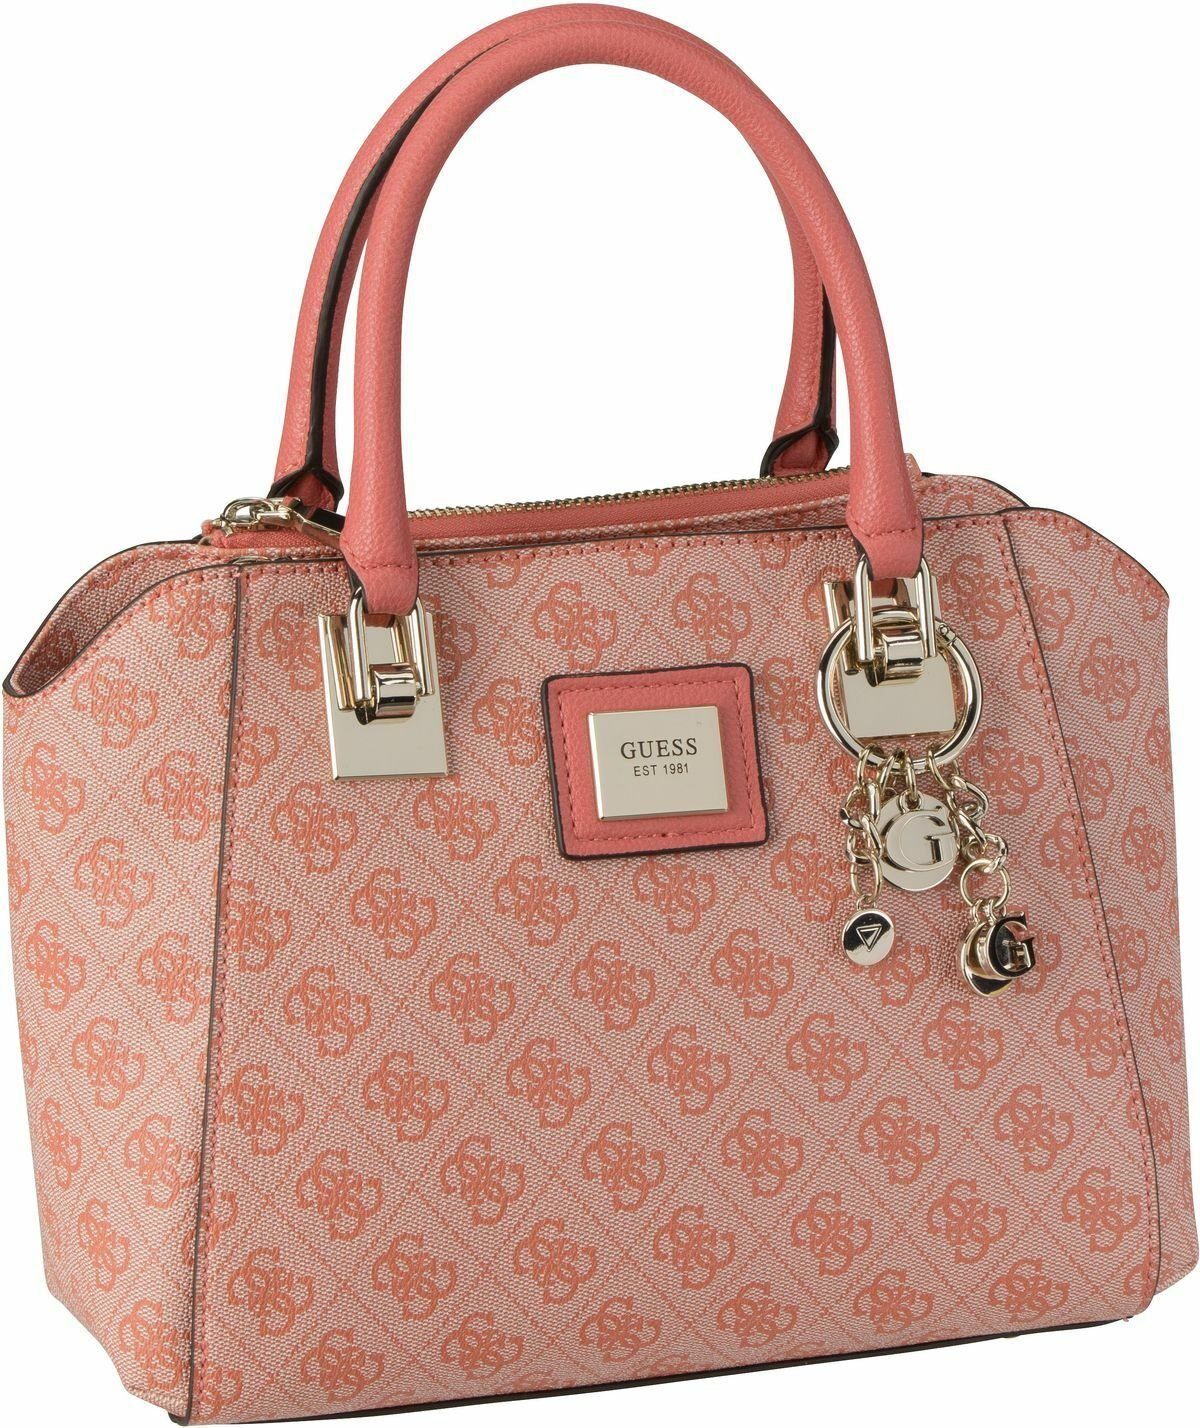 Guess Handtasche »Candace Society Satchel« kaufen | OTTO